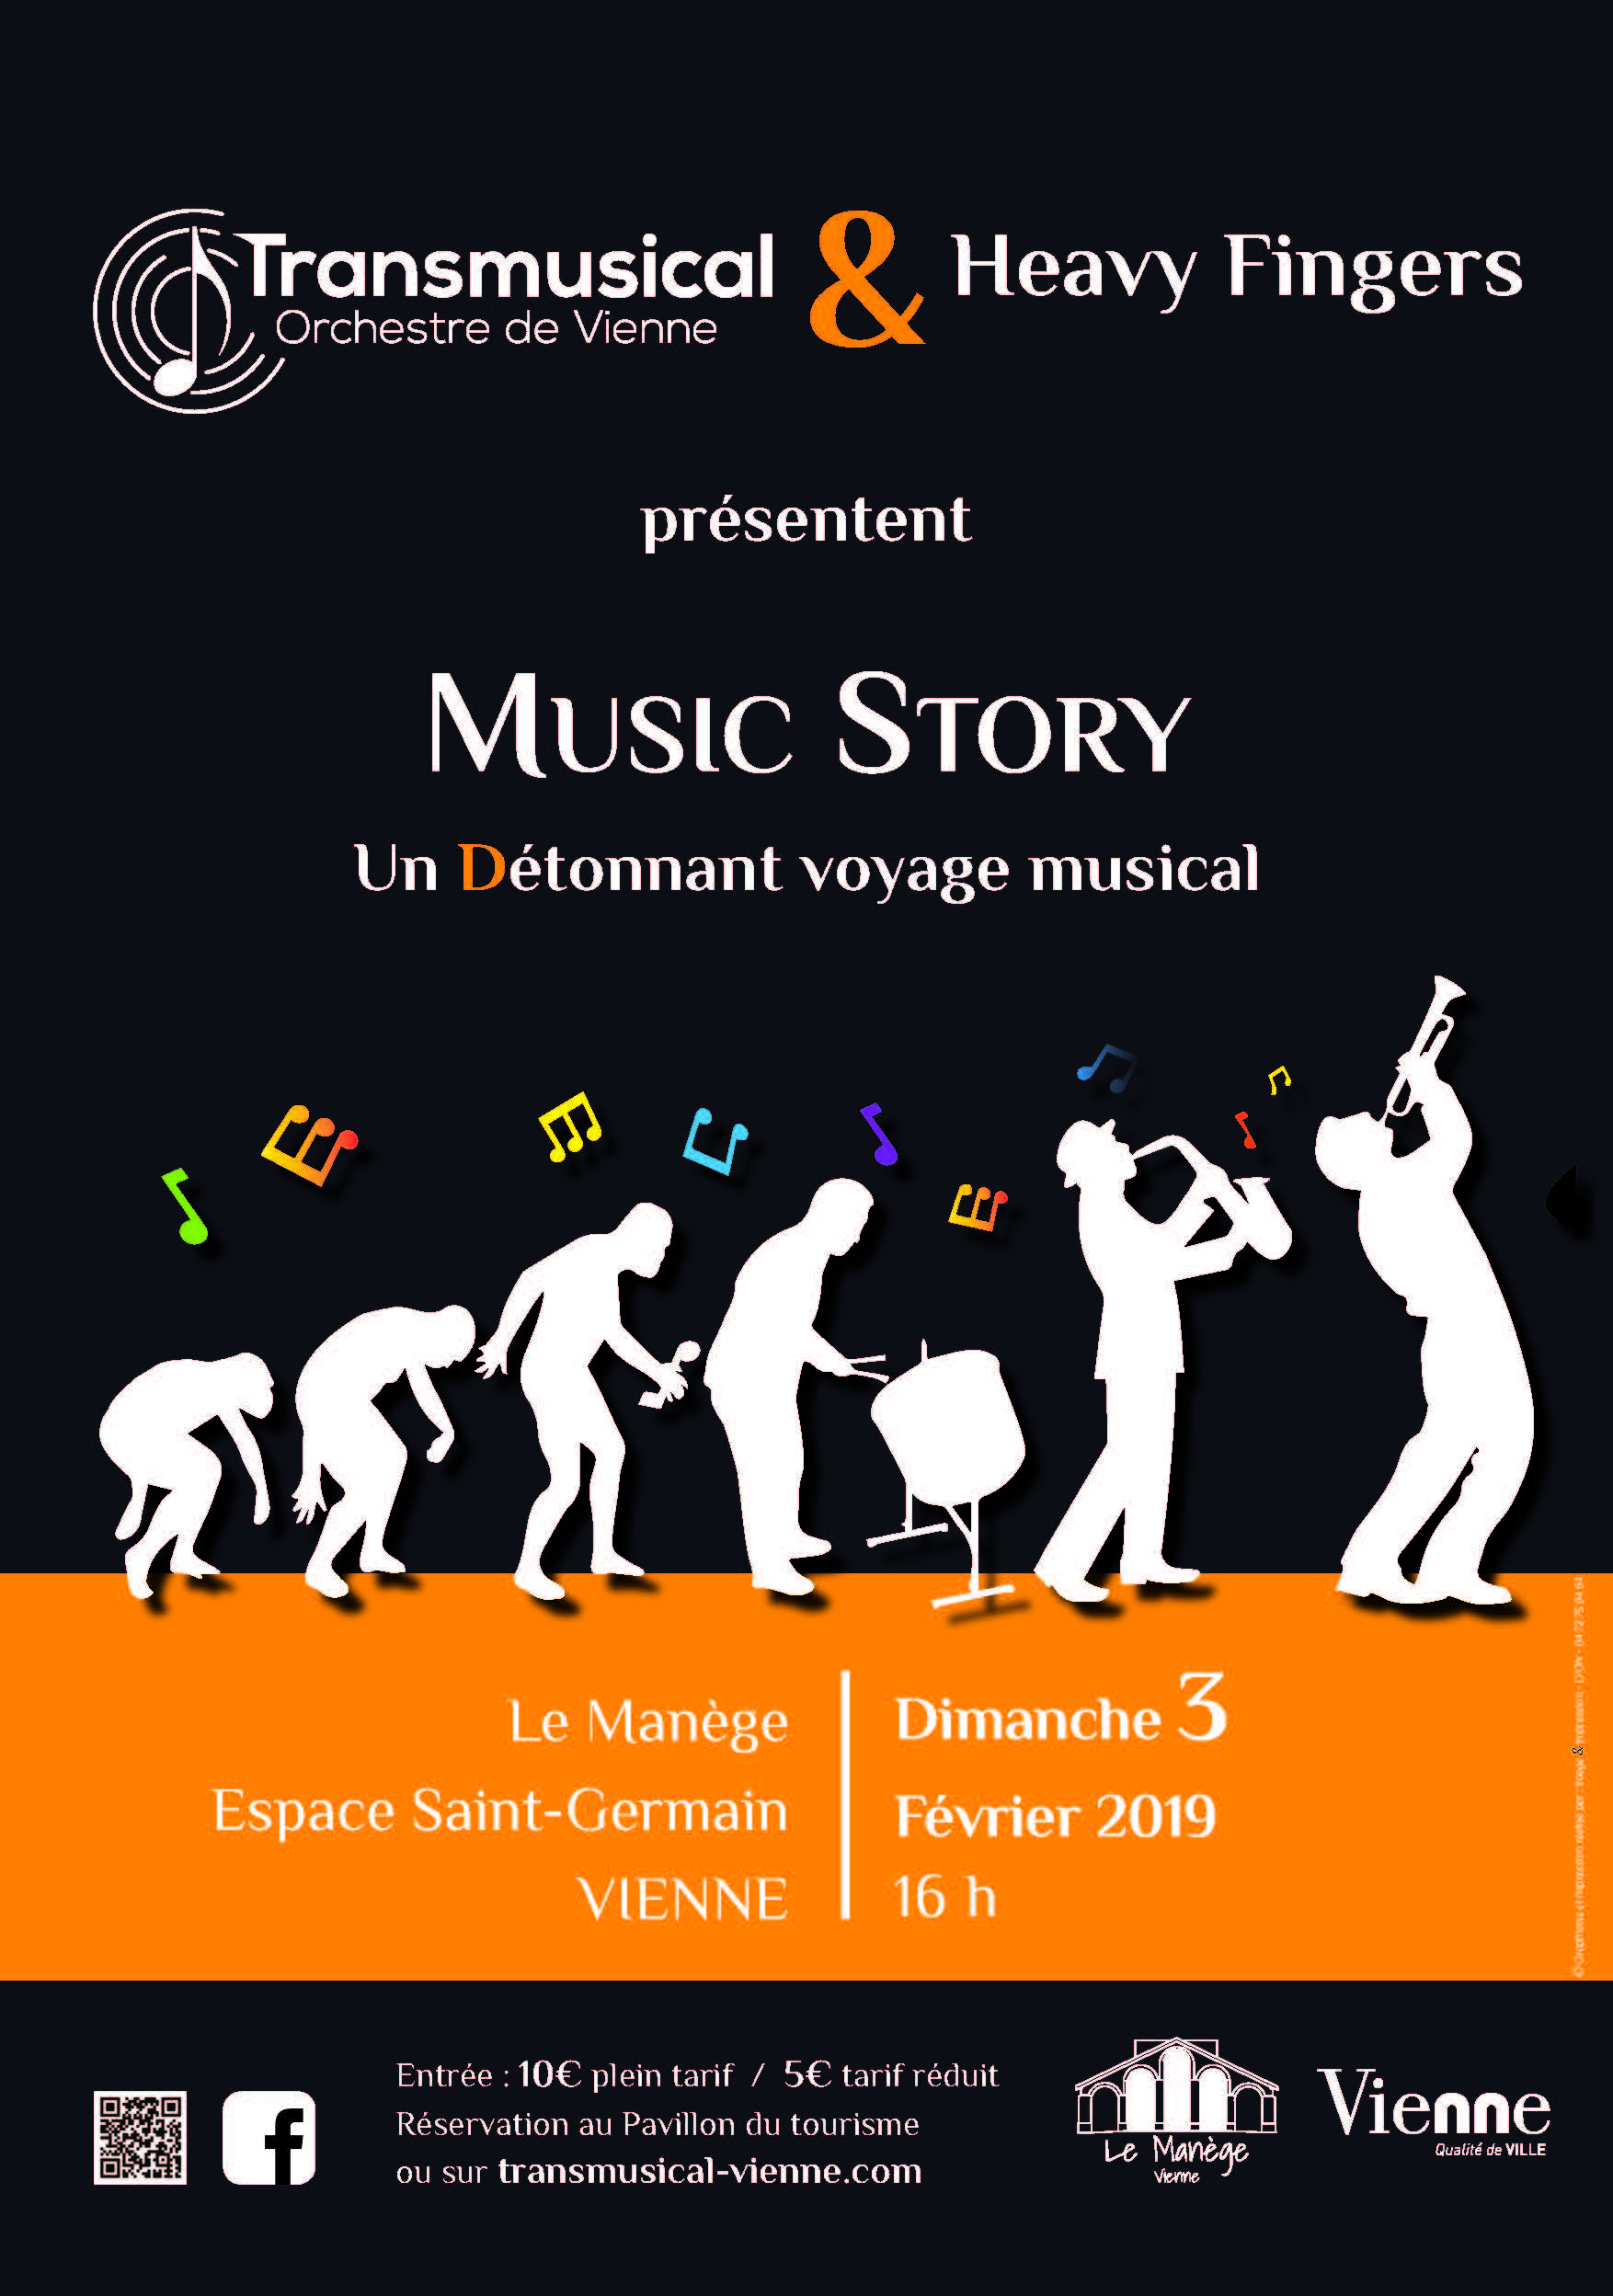 musique story transmusical 030219